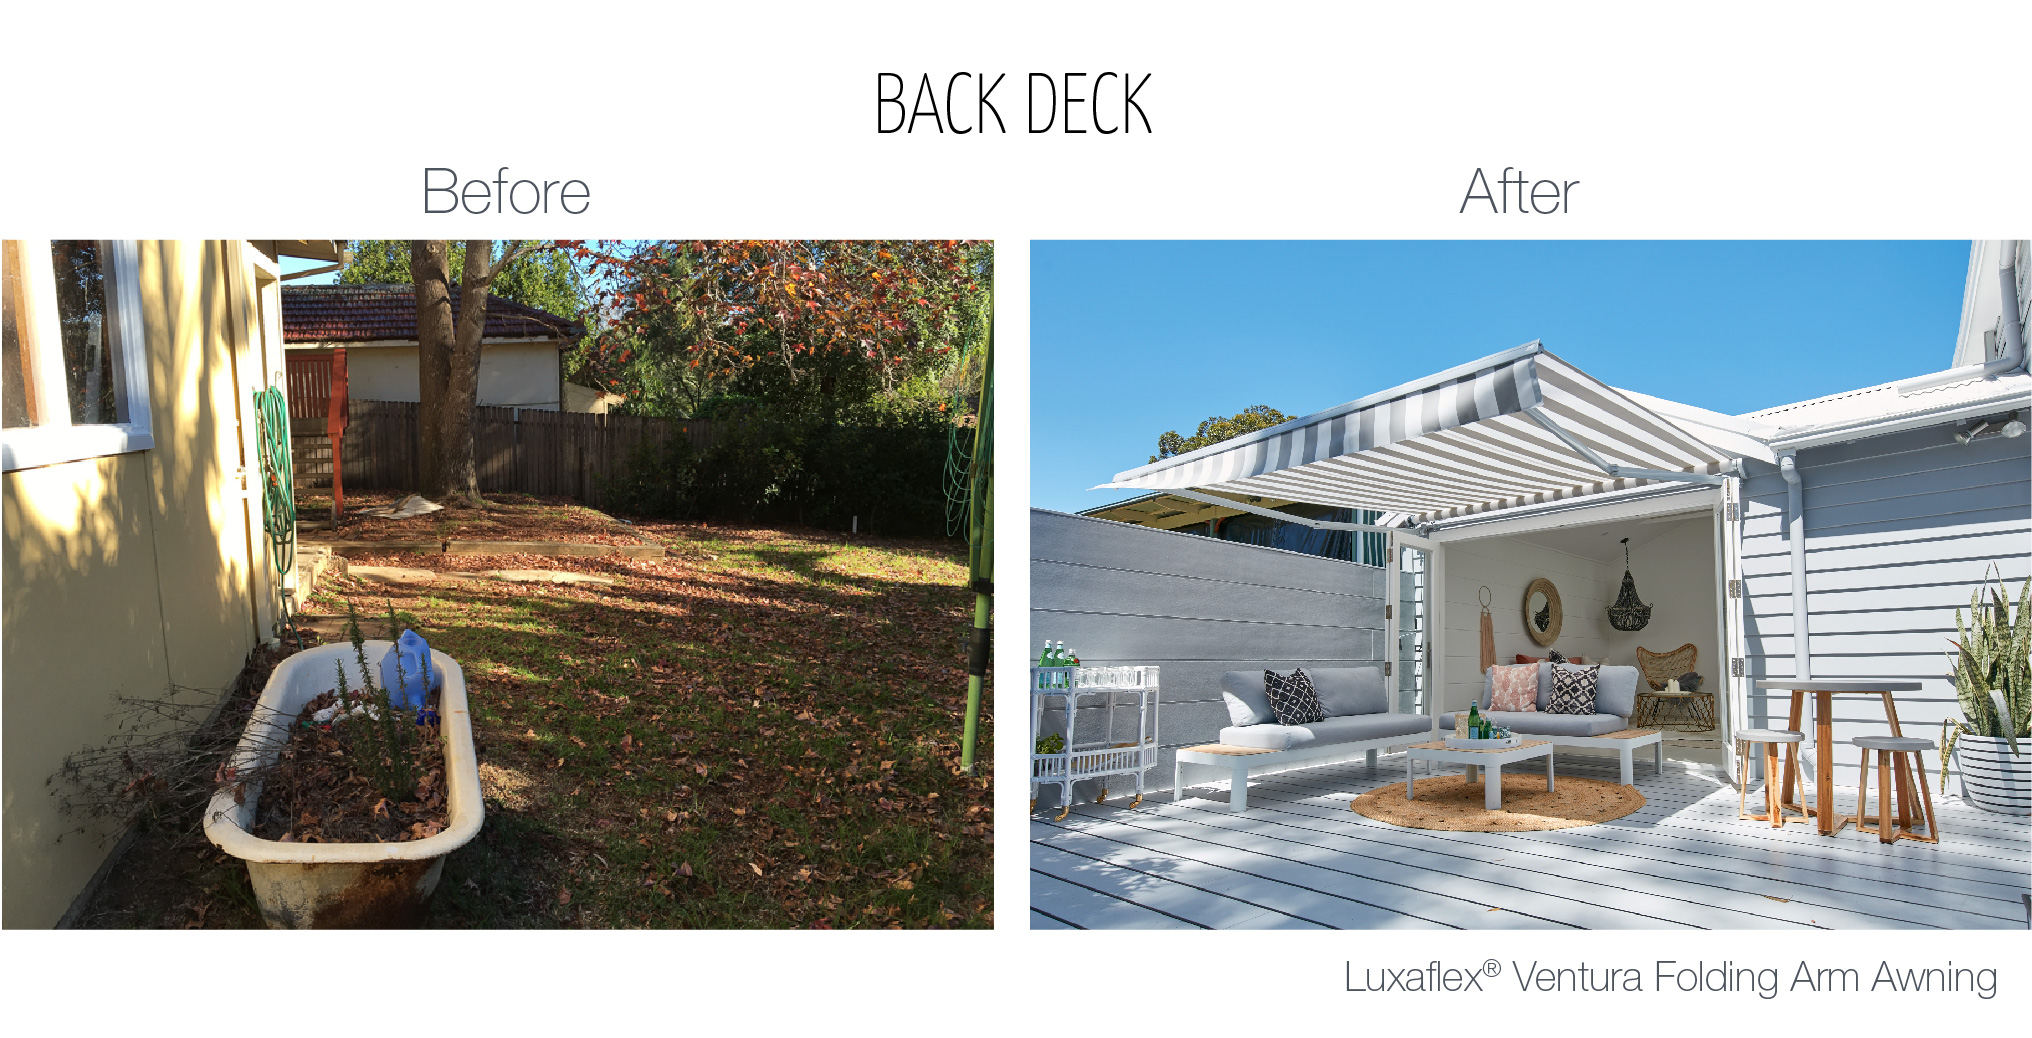 Luxaflex - Blog - Three Birds - Back Deck